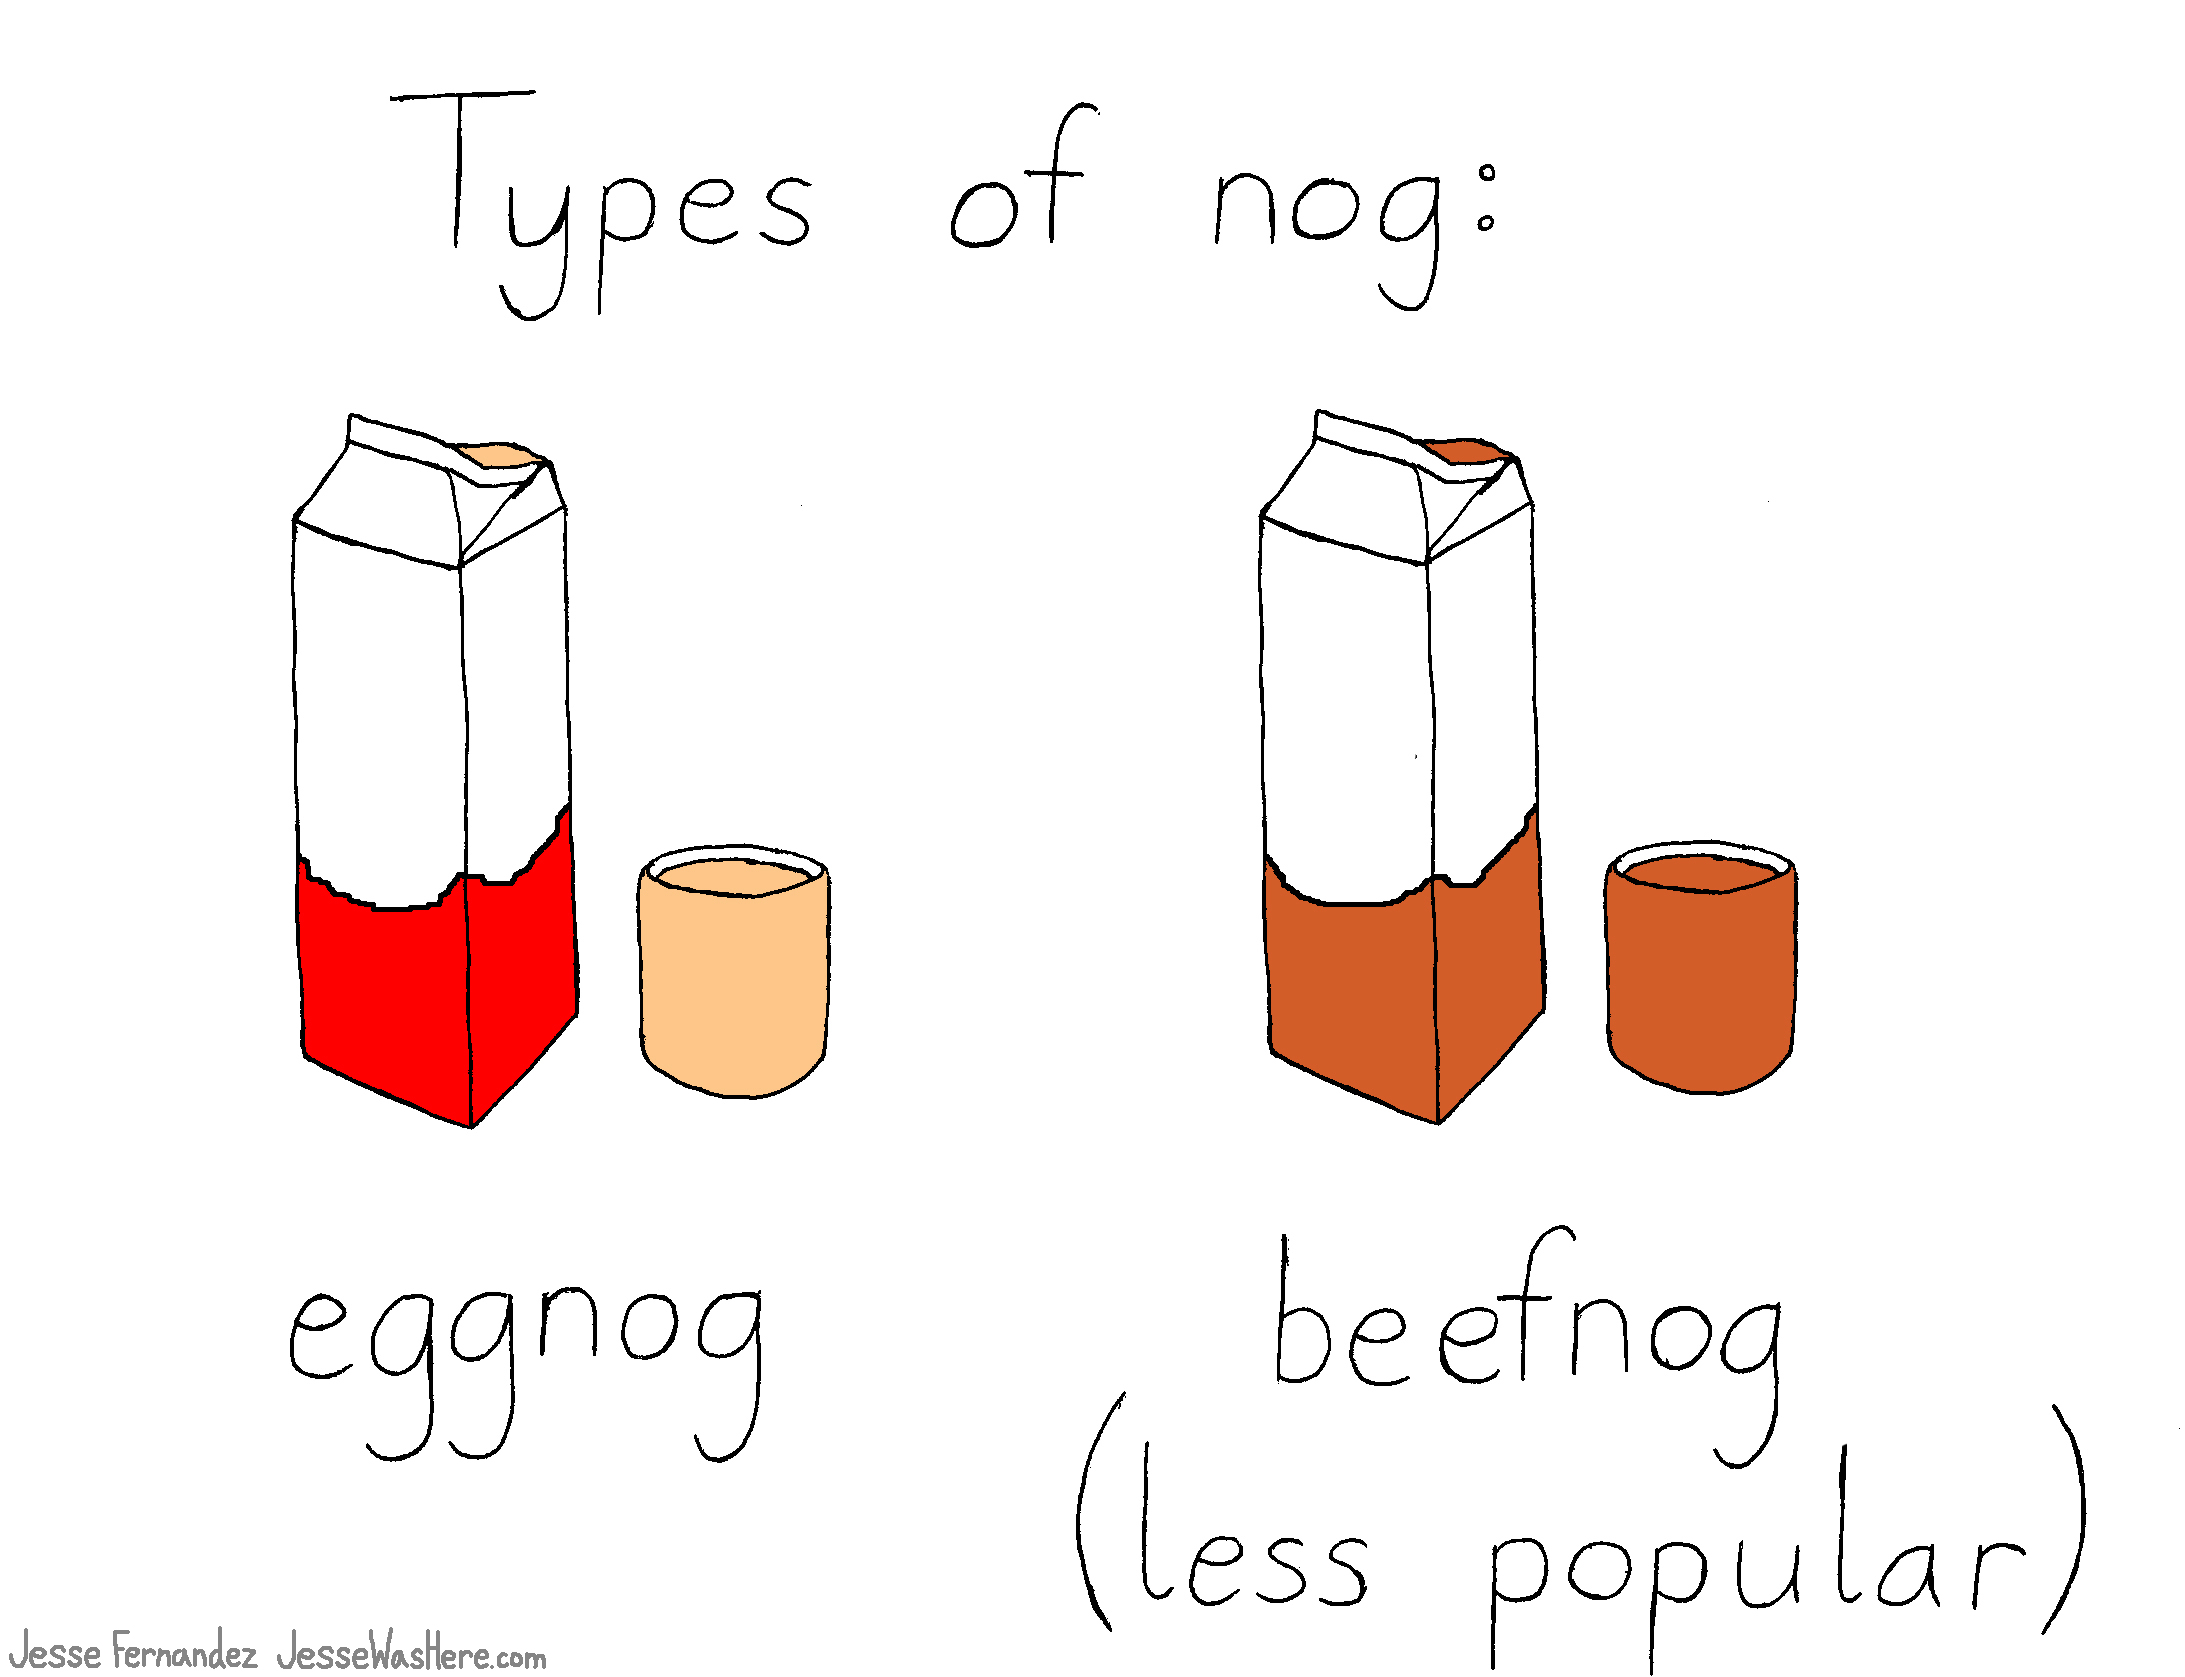 types-of-nog-edited-and-colored